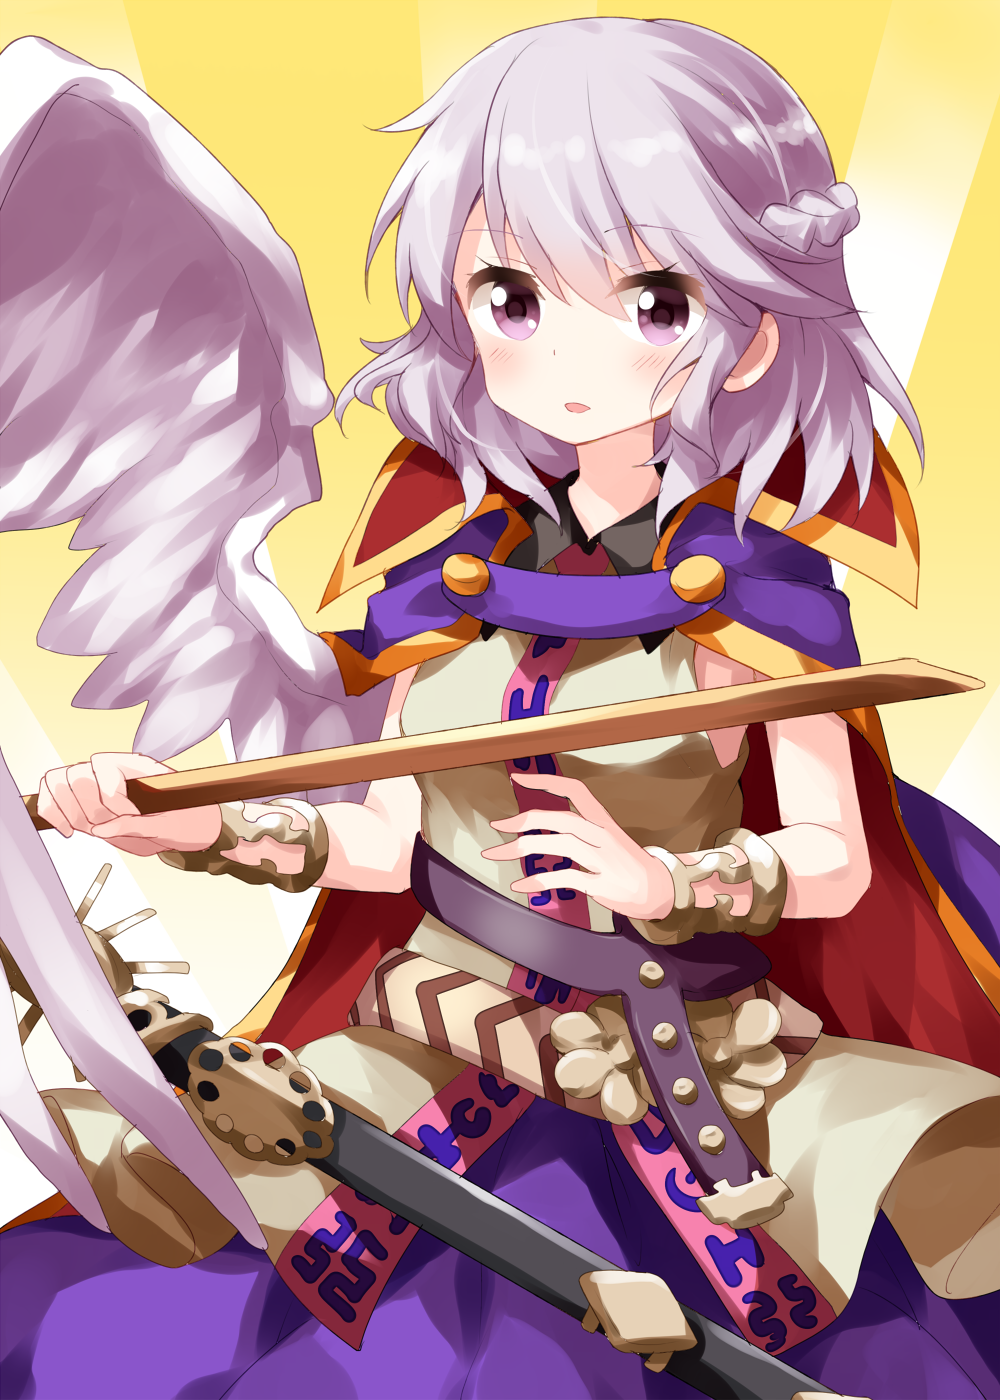 1girl bangs beige_blouse belt black_belt blouse blush bracelet braid breasts cape commentary_request cosplay cowboy_shot eyebrows_visible_through_hair feathered_wings french_braid gradient gradient_background hair_between_eyes highres holding jewelry kishin_sagume looking_at_viewer parted_lips purple_cape purple_skirt ritual_baton ruu_(tksymkw) short_hair silver_hair single_wing skirt sleeveless sleeveless_blouse small_breasts solo touhou toyosatomimi_no_miko toyosatomimi_no_miko_(cosplay) violet_eyes white_wings wings yellow_background